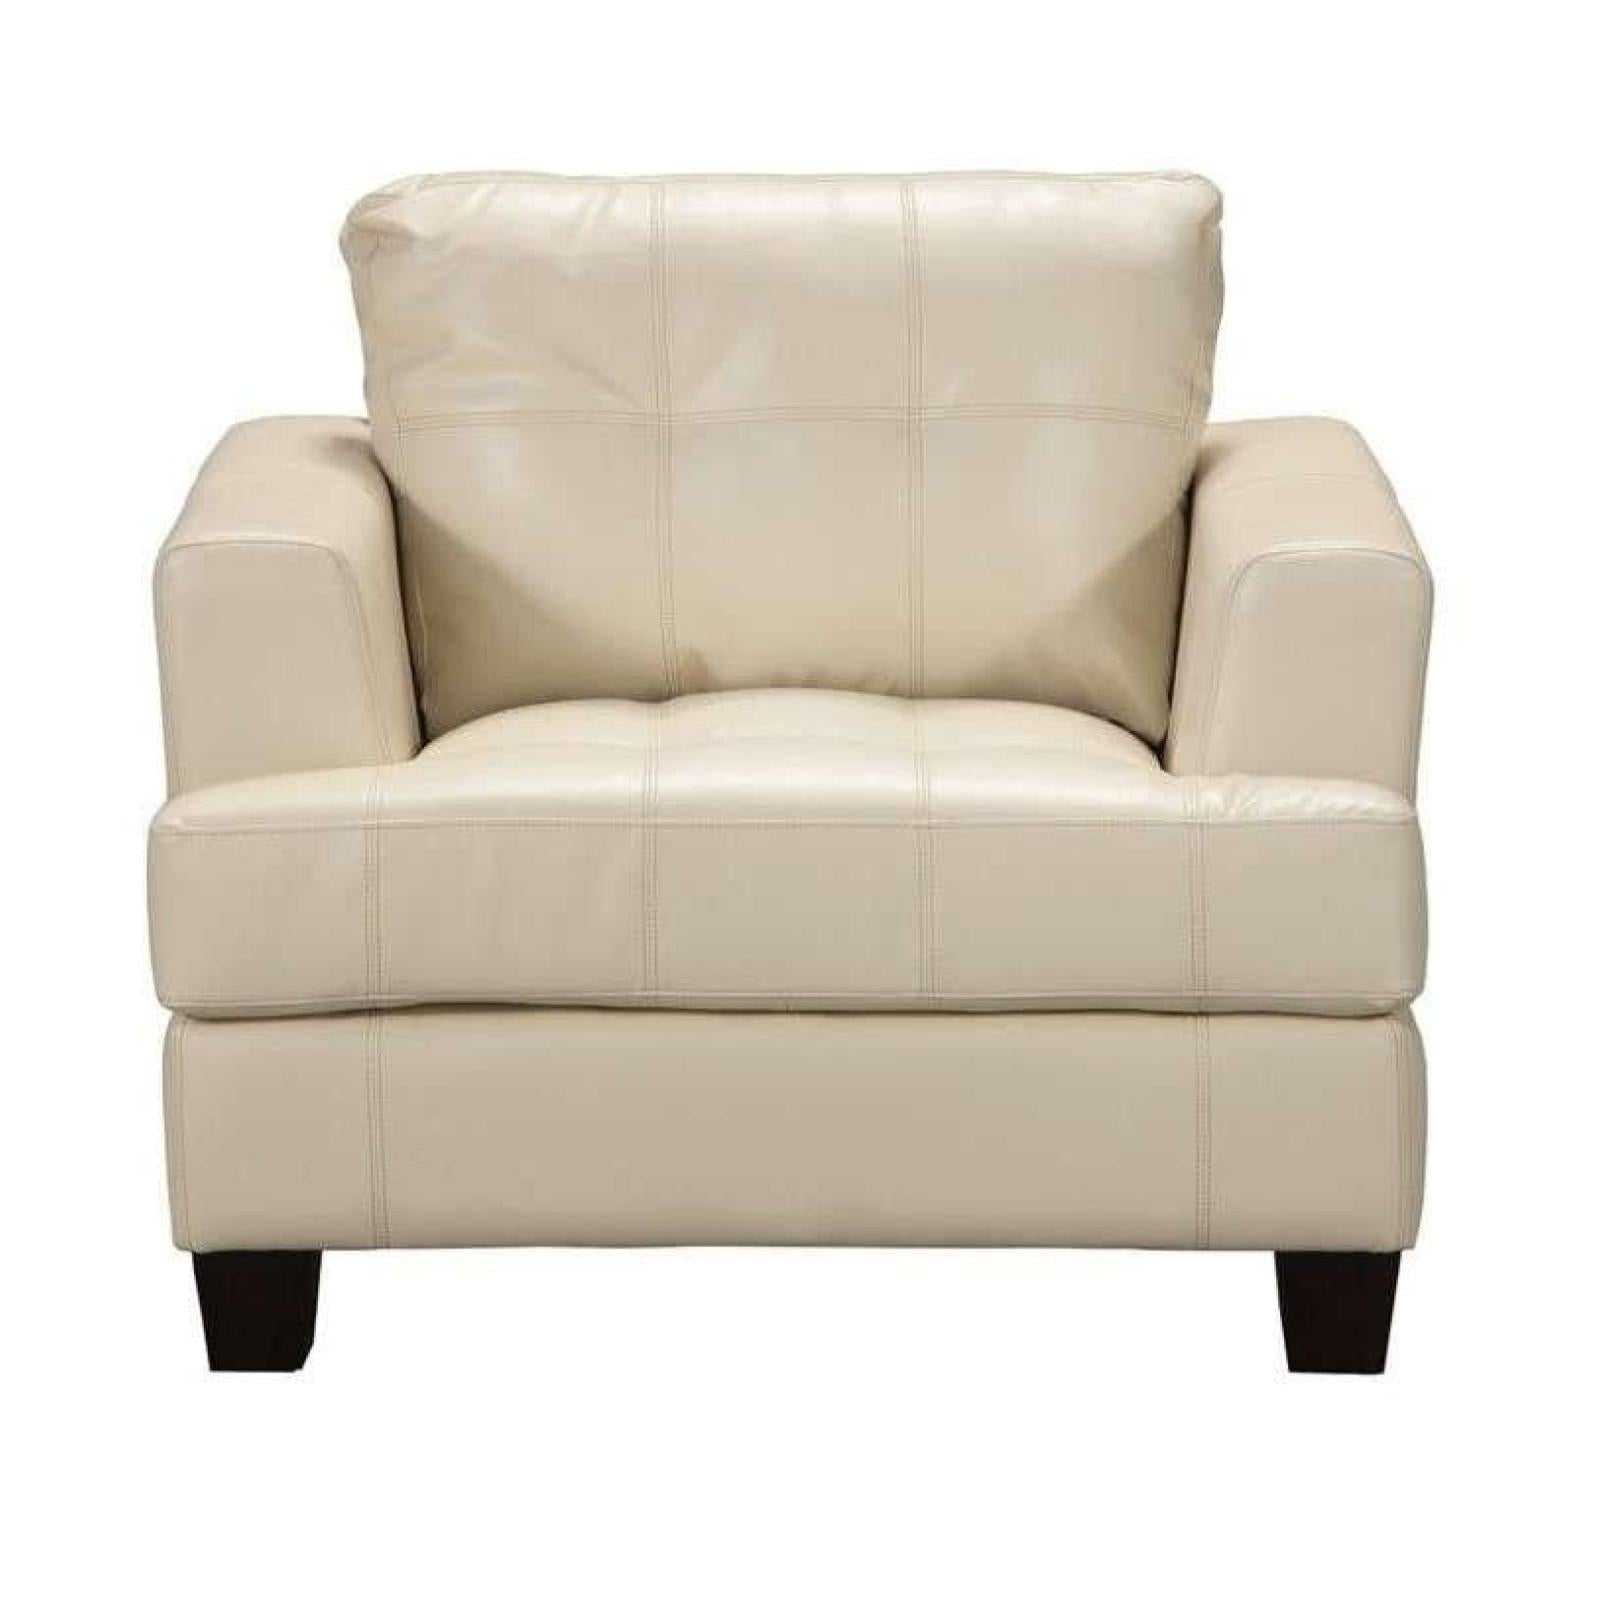 Samuel   Cream Chair. Adams Furniture of Everett  MA   Quality Furniture at Discount Prices